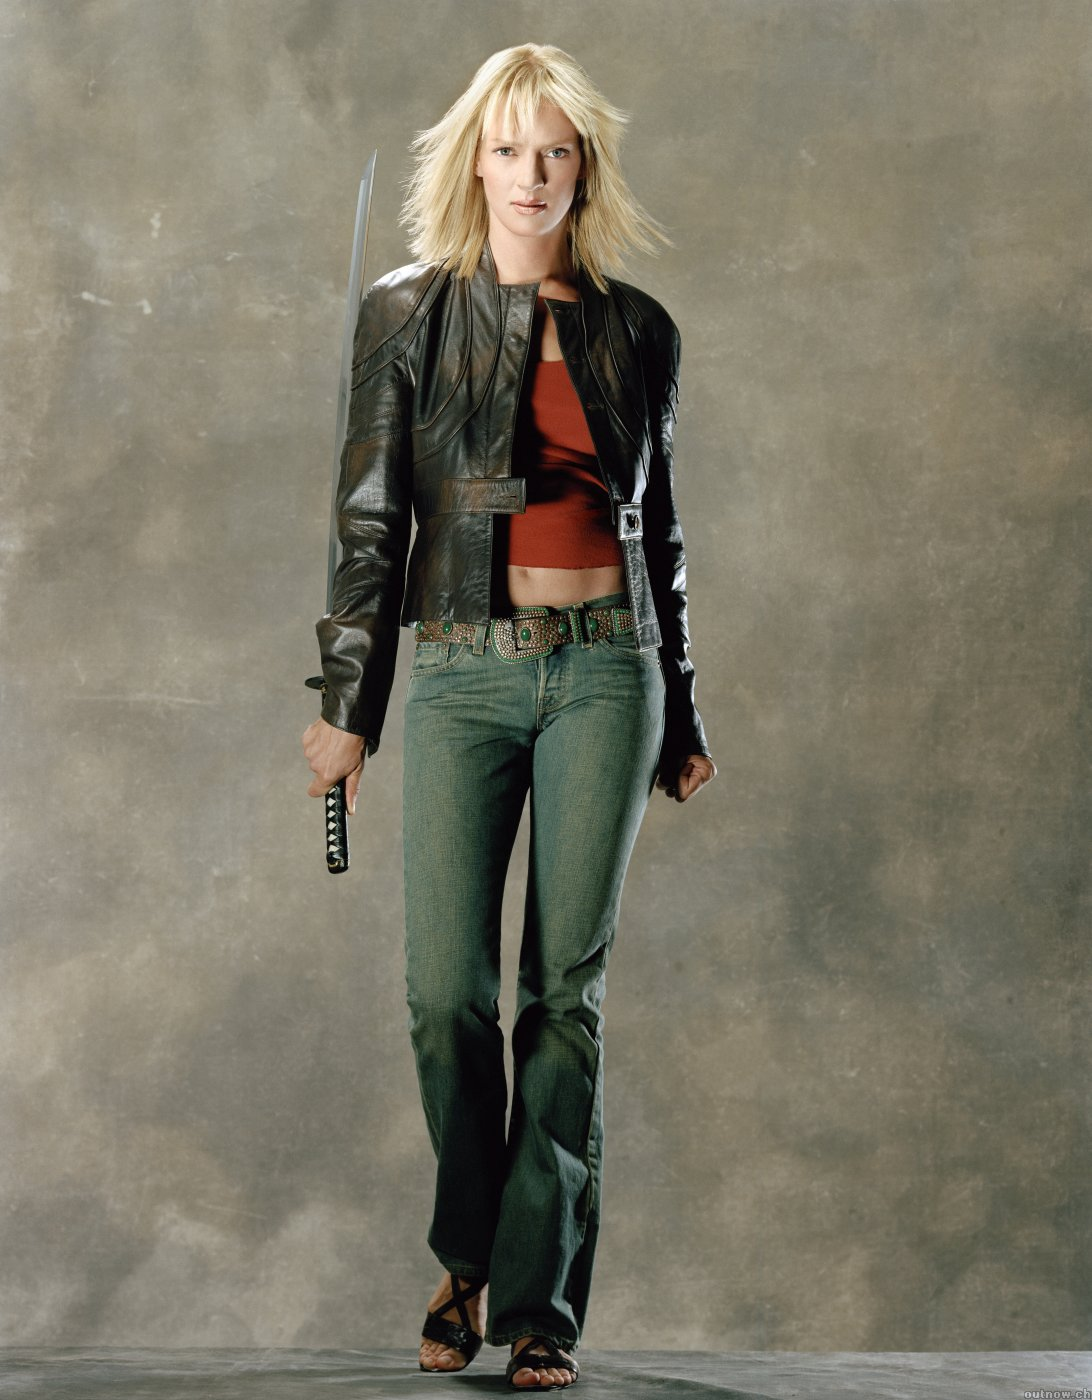 Movies Katana Uma Thurman HD Wallpaper